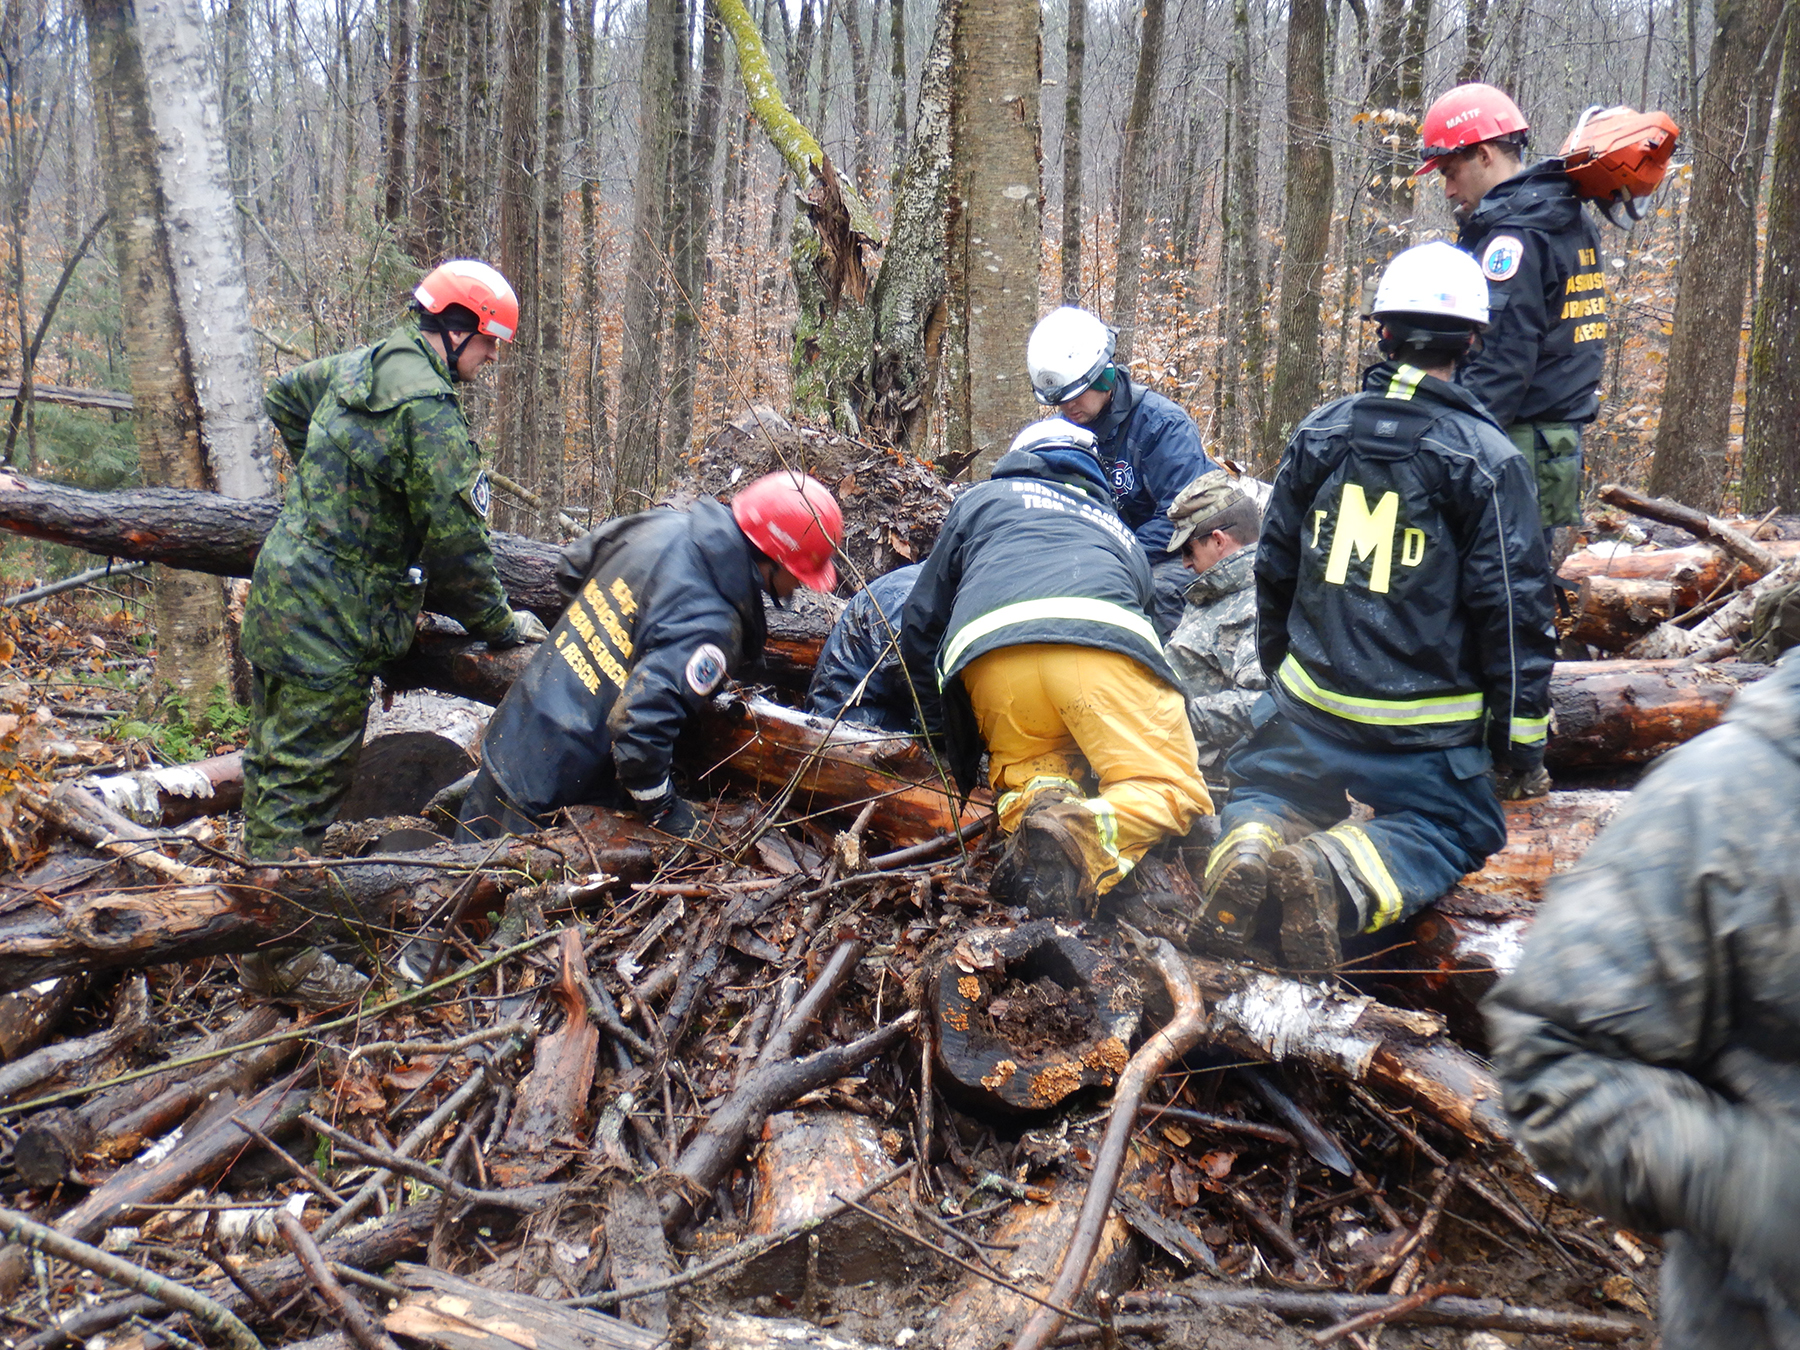 Corporal Mark Milne, from 8 Wing Trenton, Ontario, works to extract a casualty from under a fallen tree during Exercise Vigilant Guard, held in Massachusetts from November 5 to 8, 2018. PHOTO: Submitted